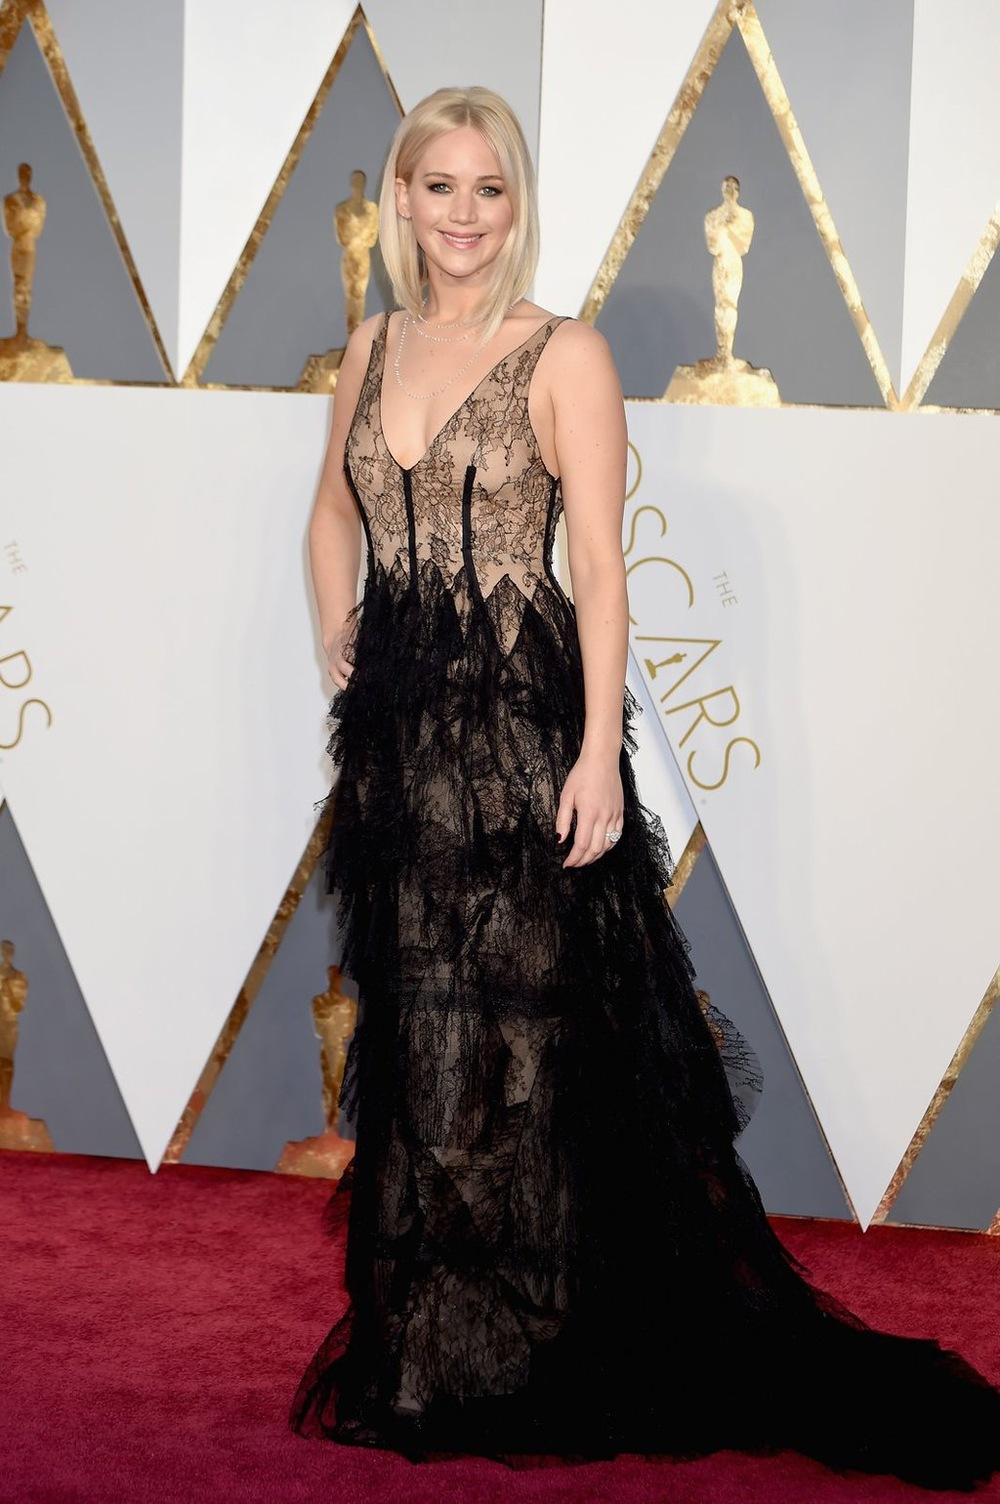 Jennifer Lawrence- wearing a Dior gown J-Law never disappoints on the red carpet. Not only am I loving her sheer gown, but her bob is everything.